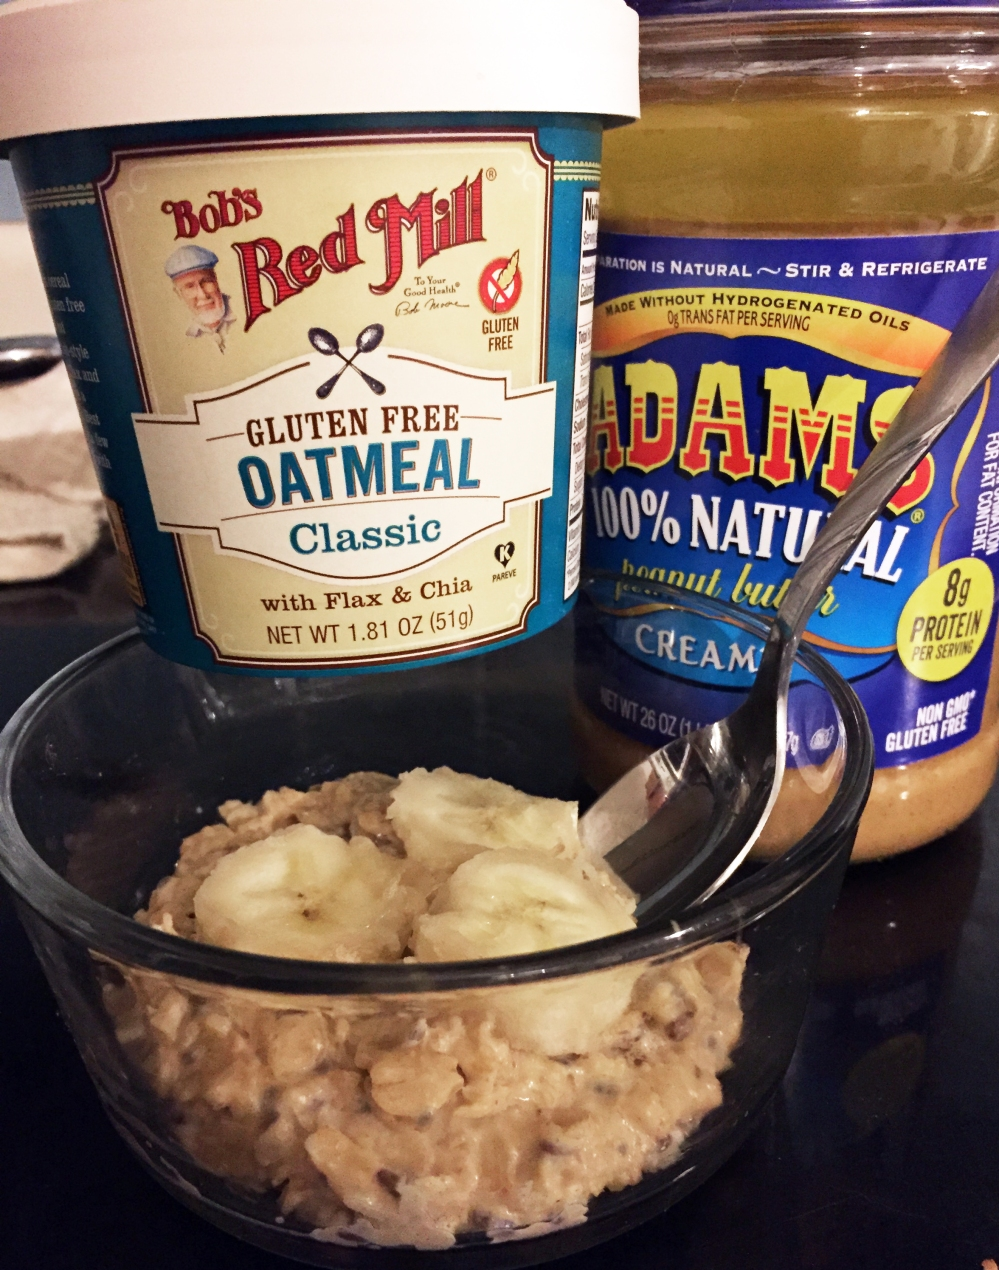 oatmeal-ingredients-coffeetapeclimb.JPG